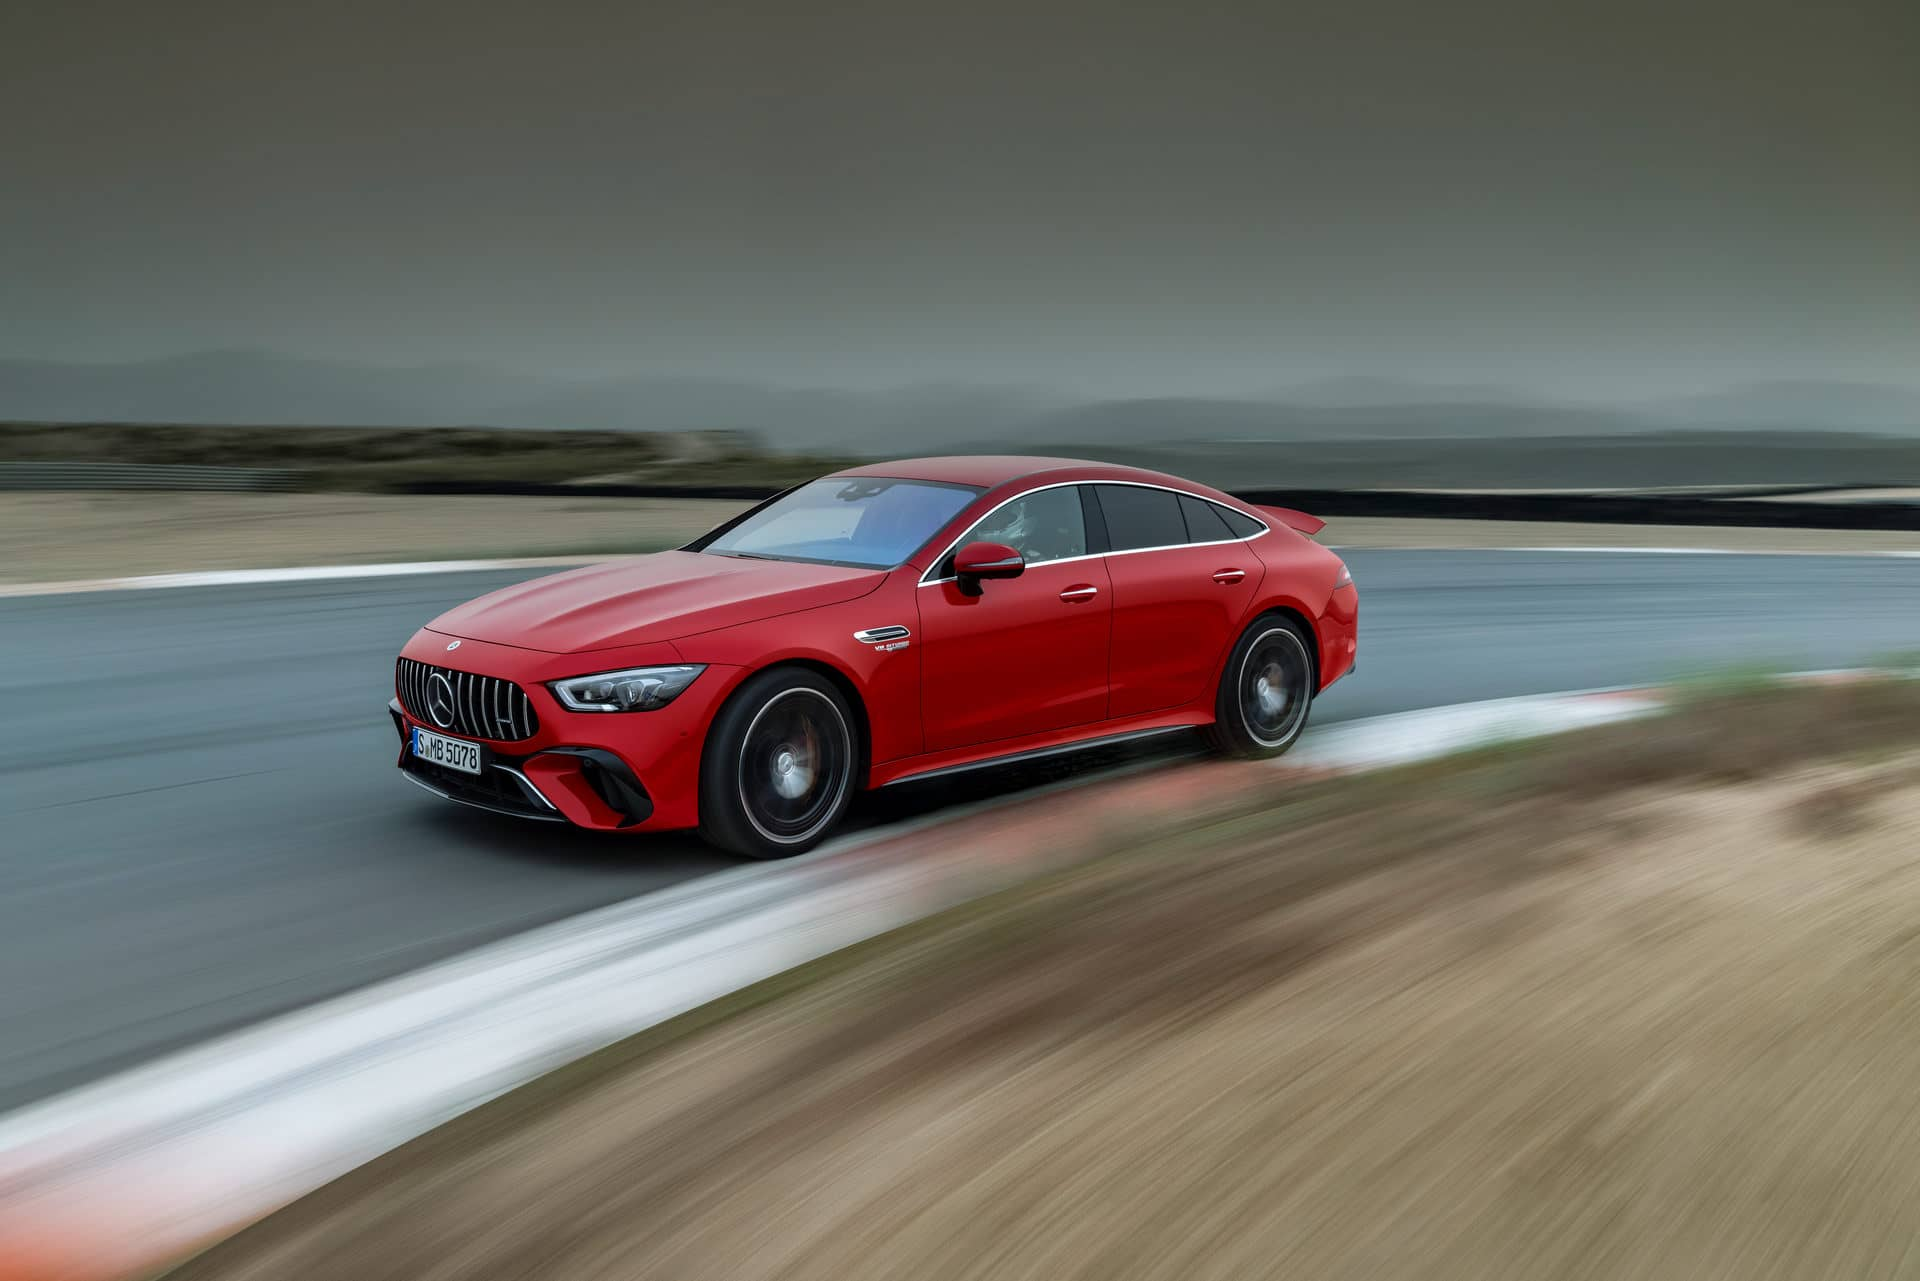 mercedes-amg gt 63 s eperformance (7)